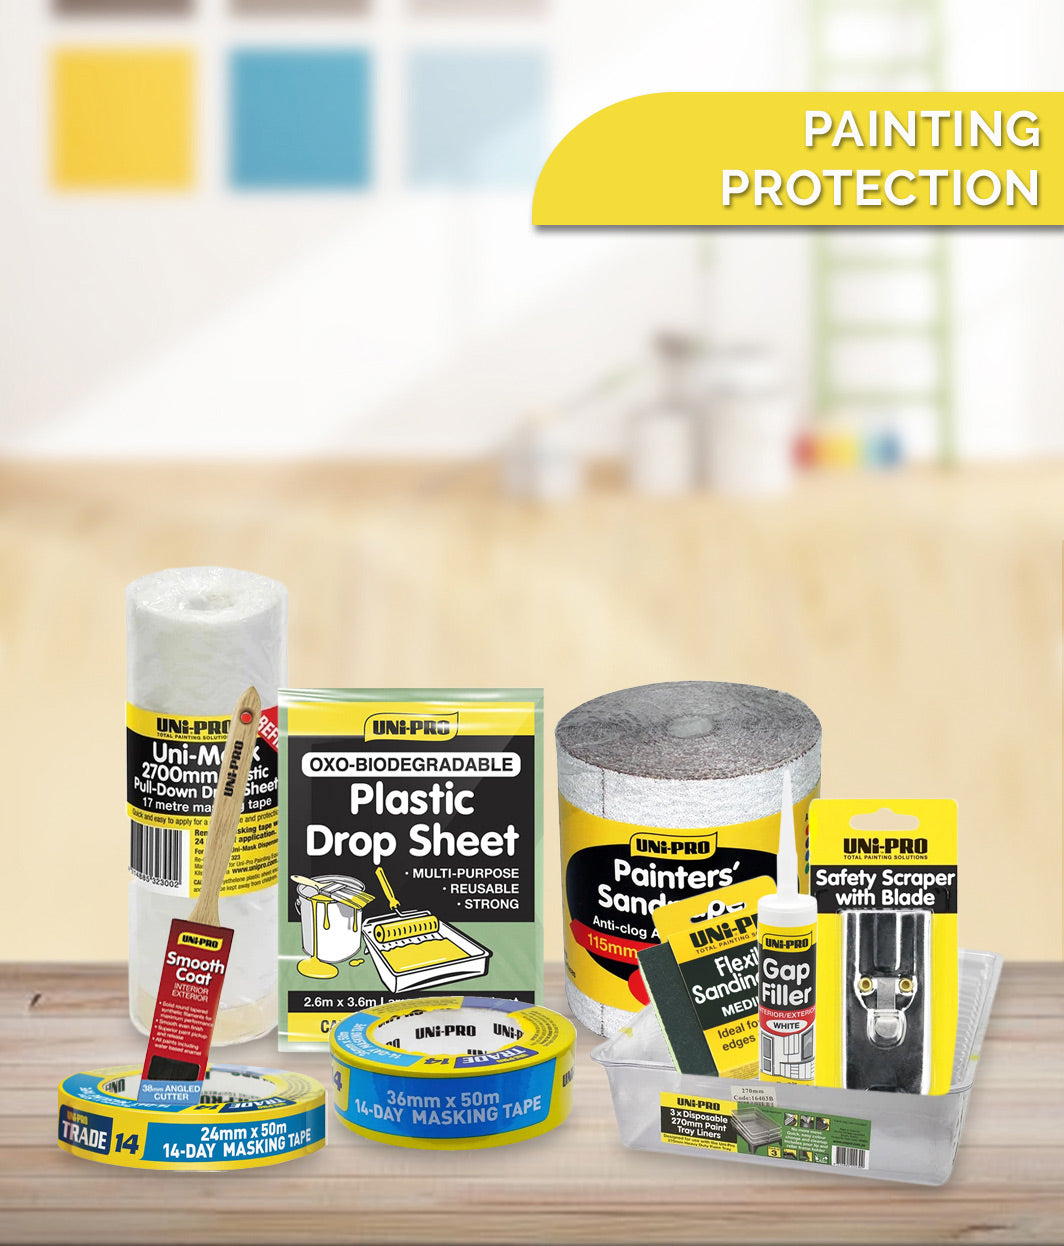 PAINTING PROTECTION & ACCESSORIES